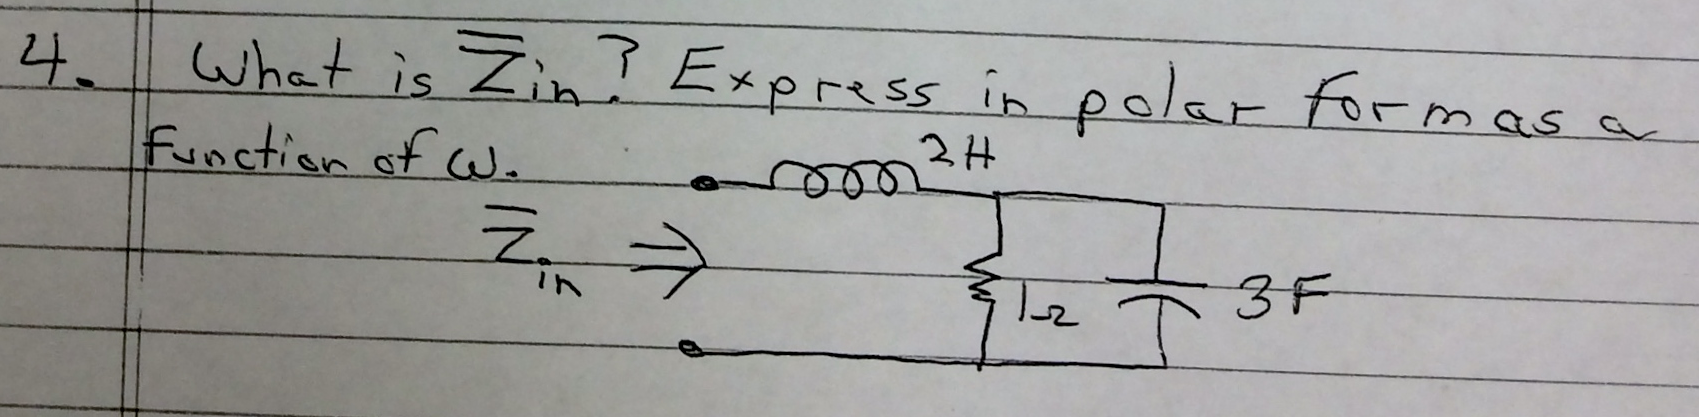 Wate is ? Express in polar form as a function of